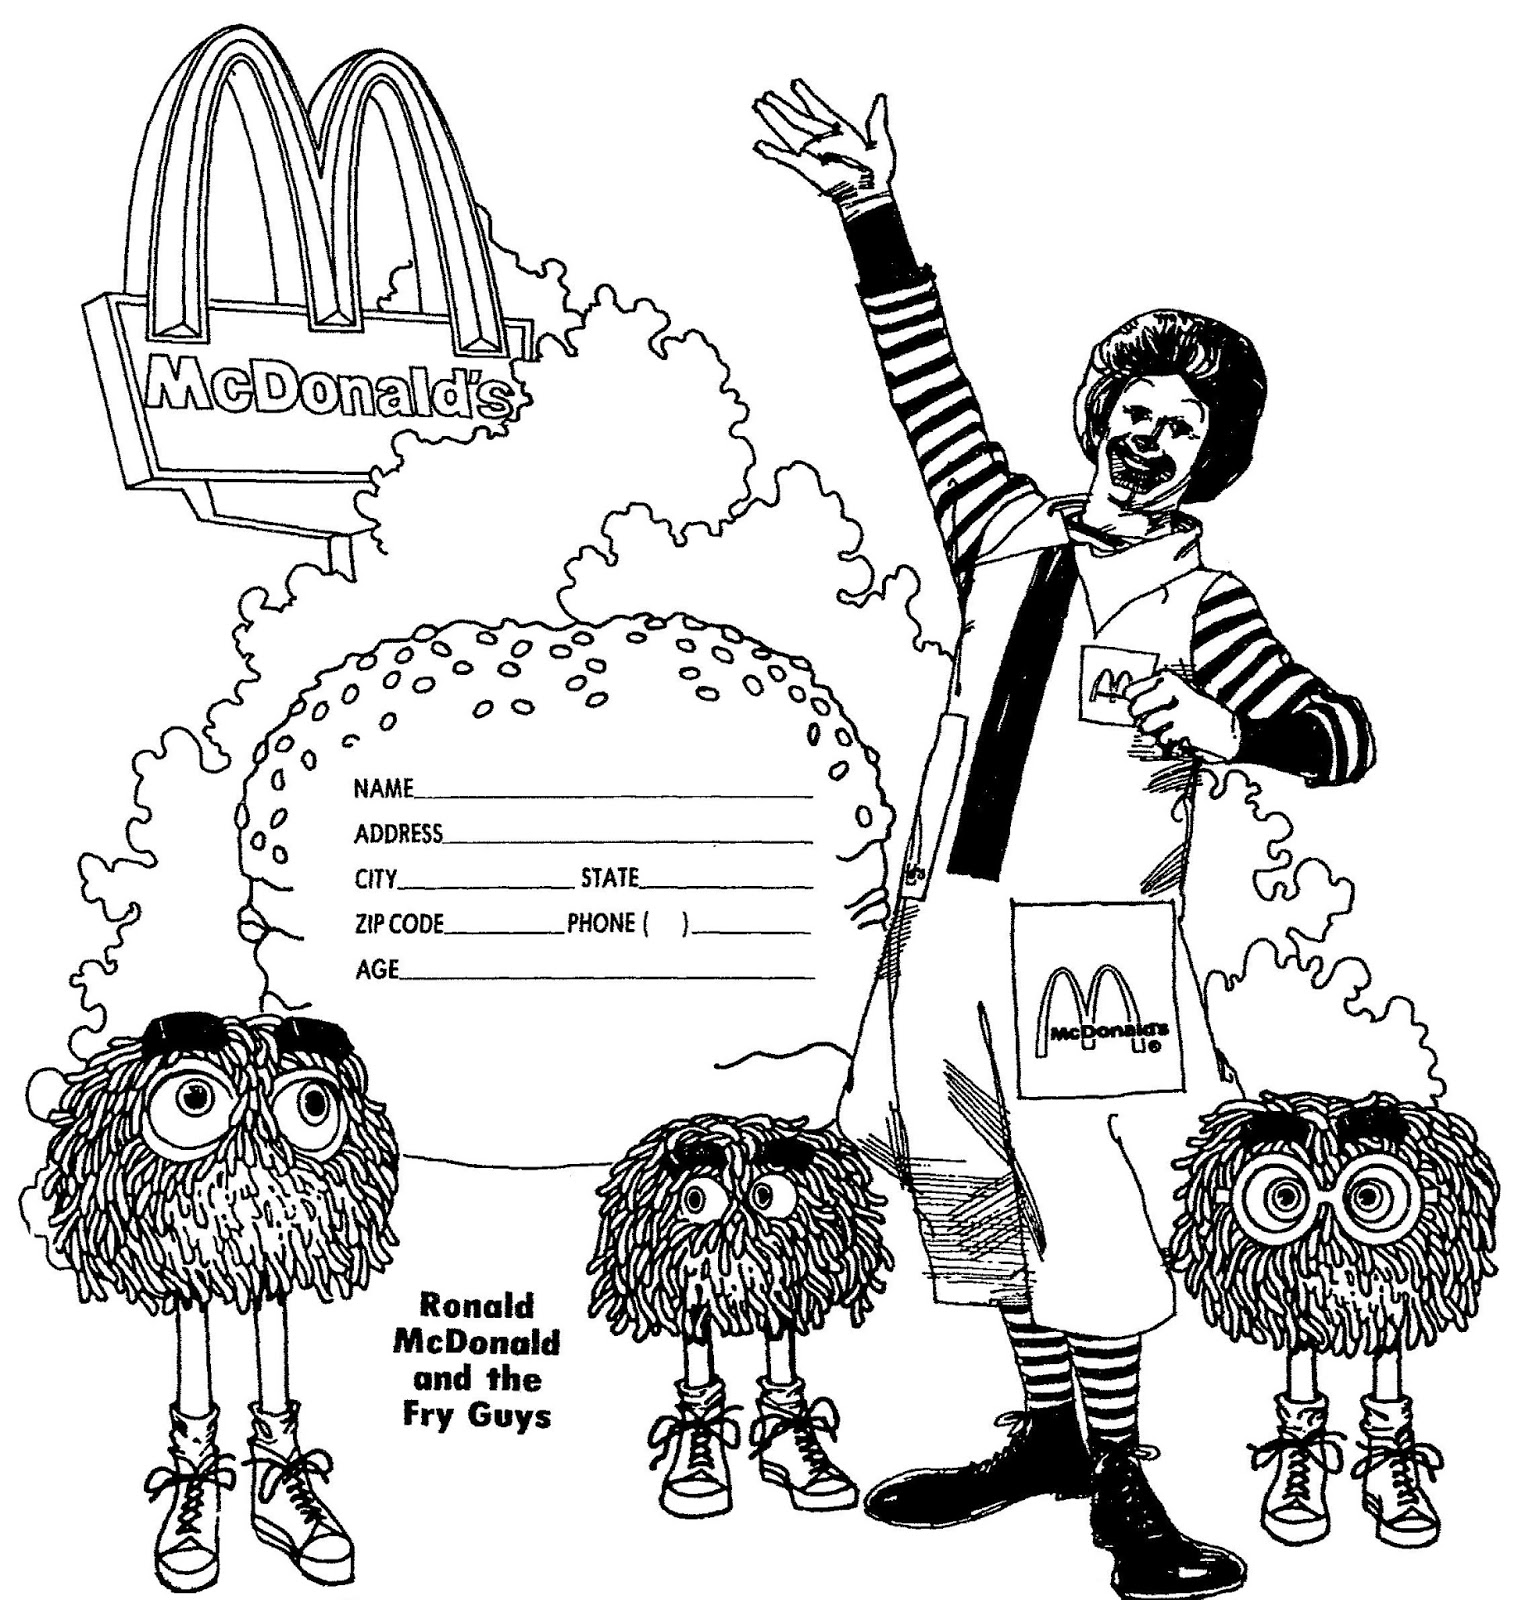 ronald and the fry guys a newspaper